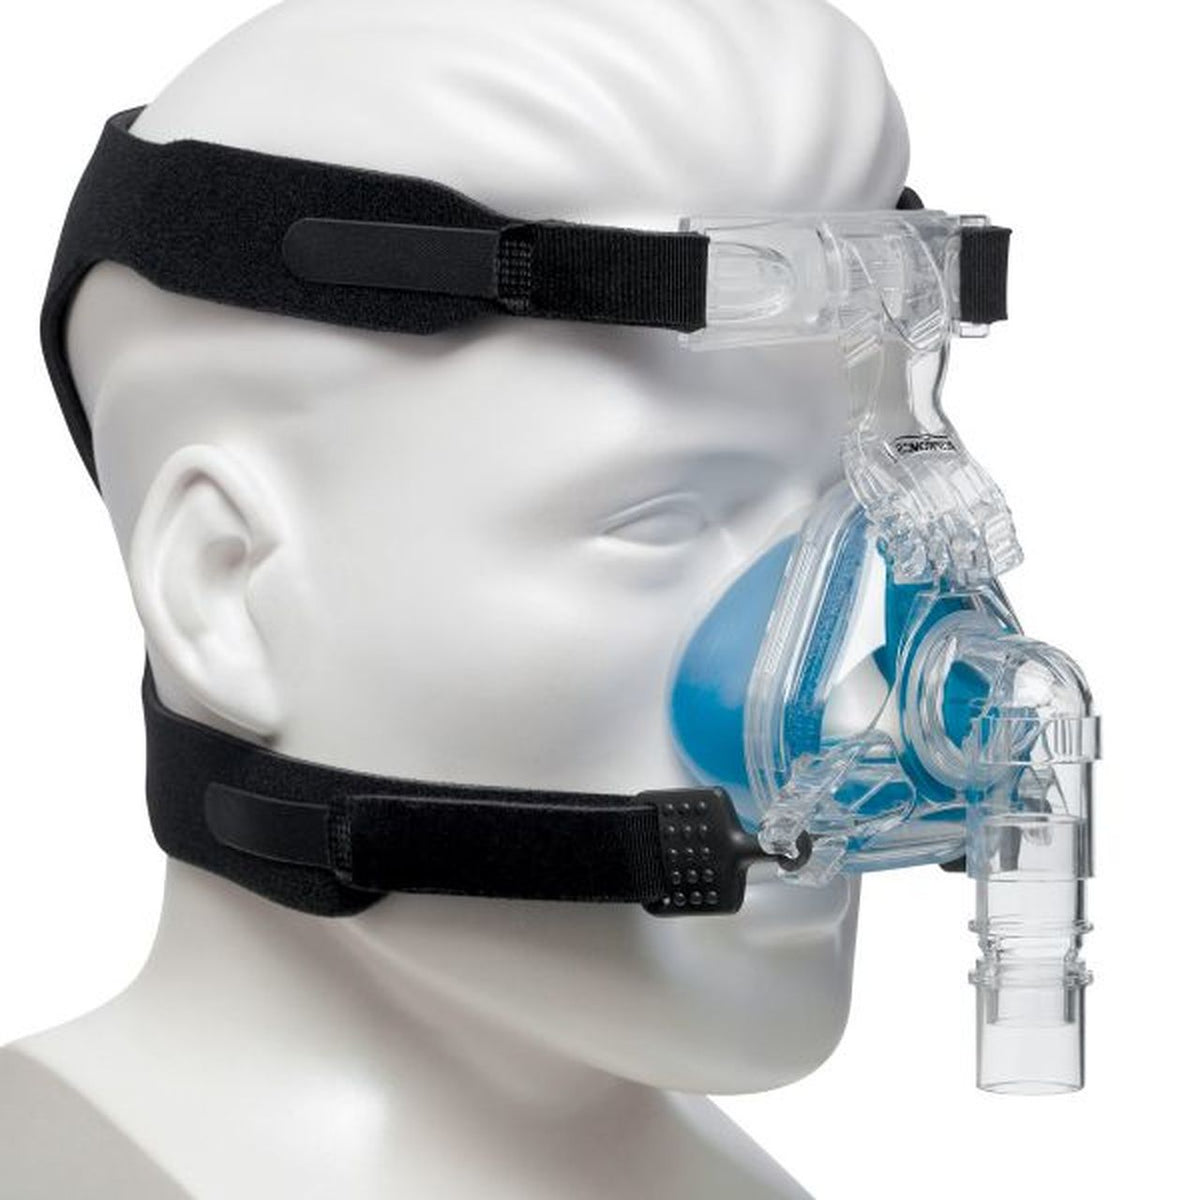 Mannequin side preview of Philips Respironics ComfortGel Blue Nasal Mask with Headgear